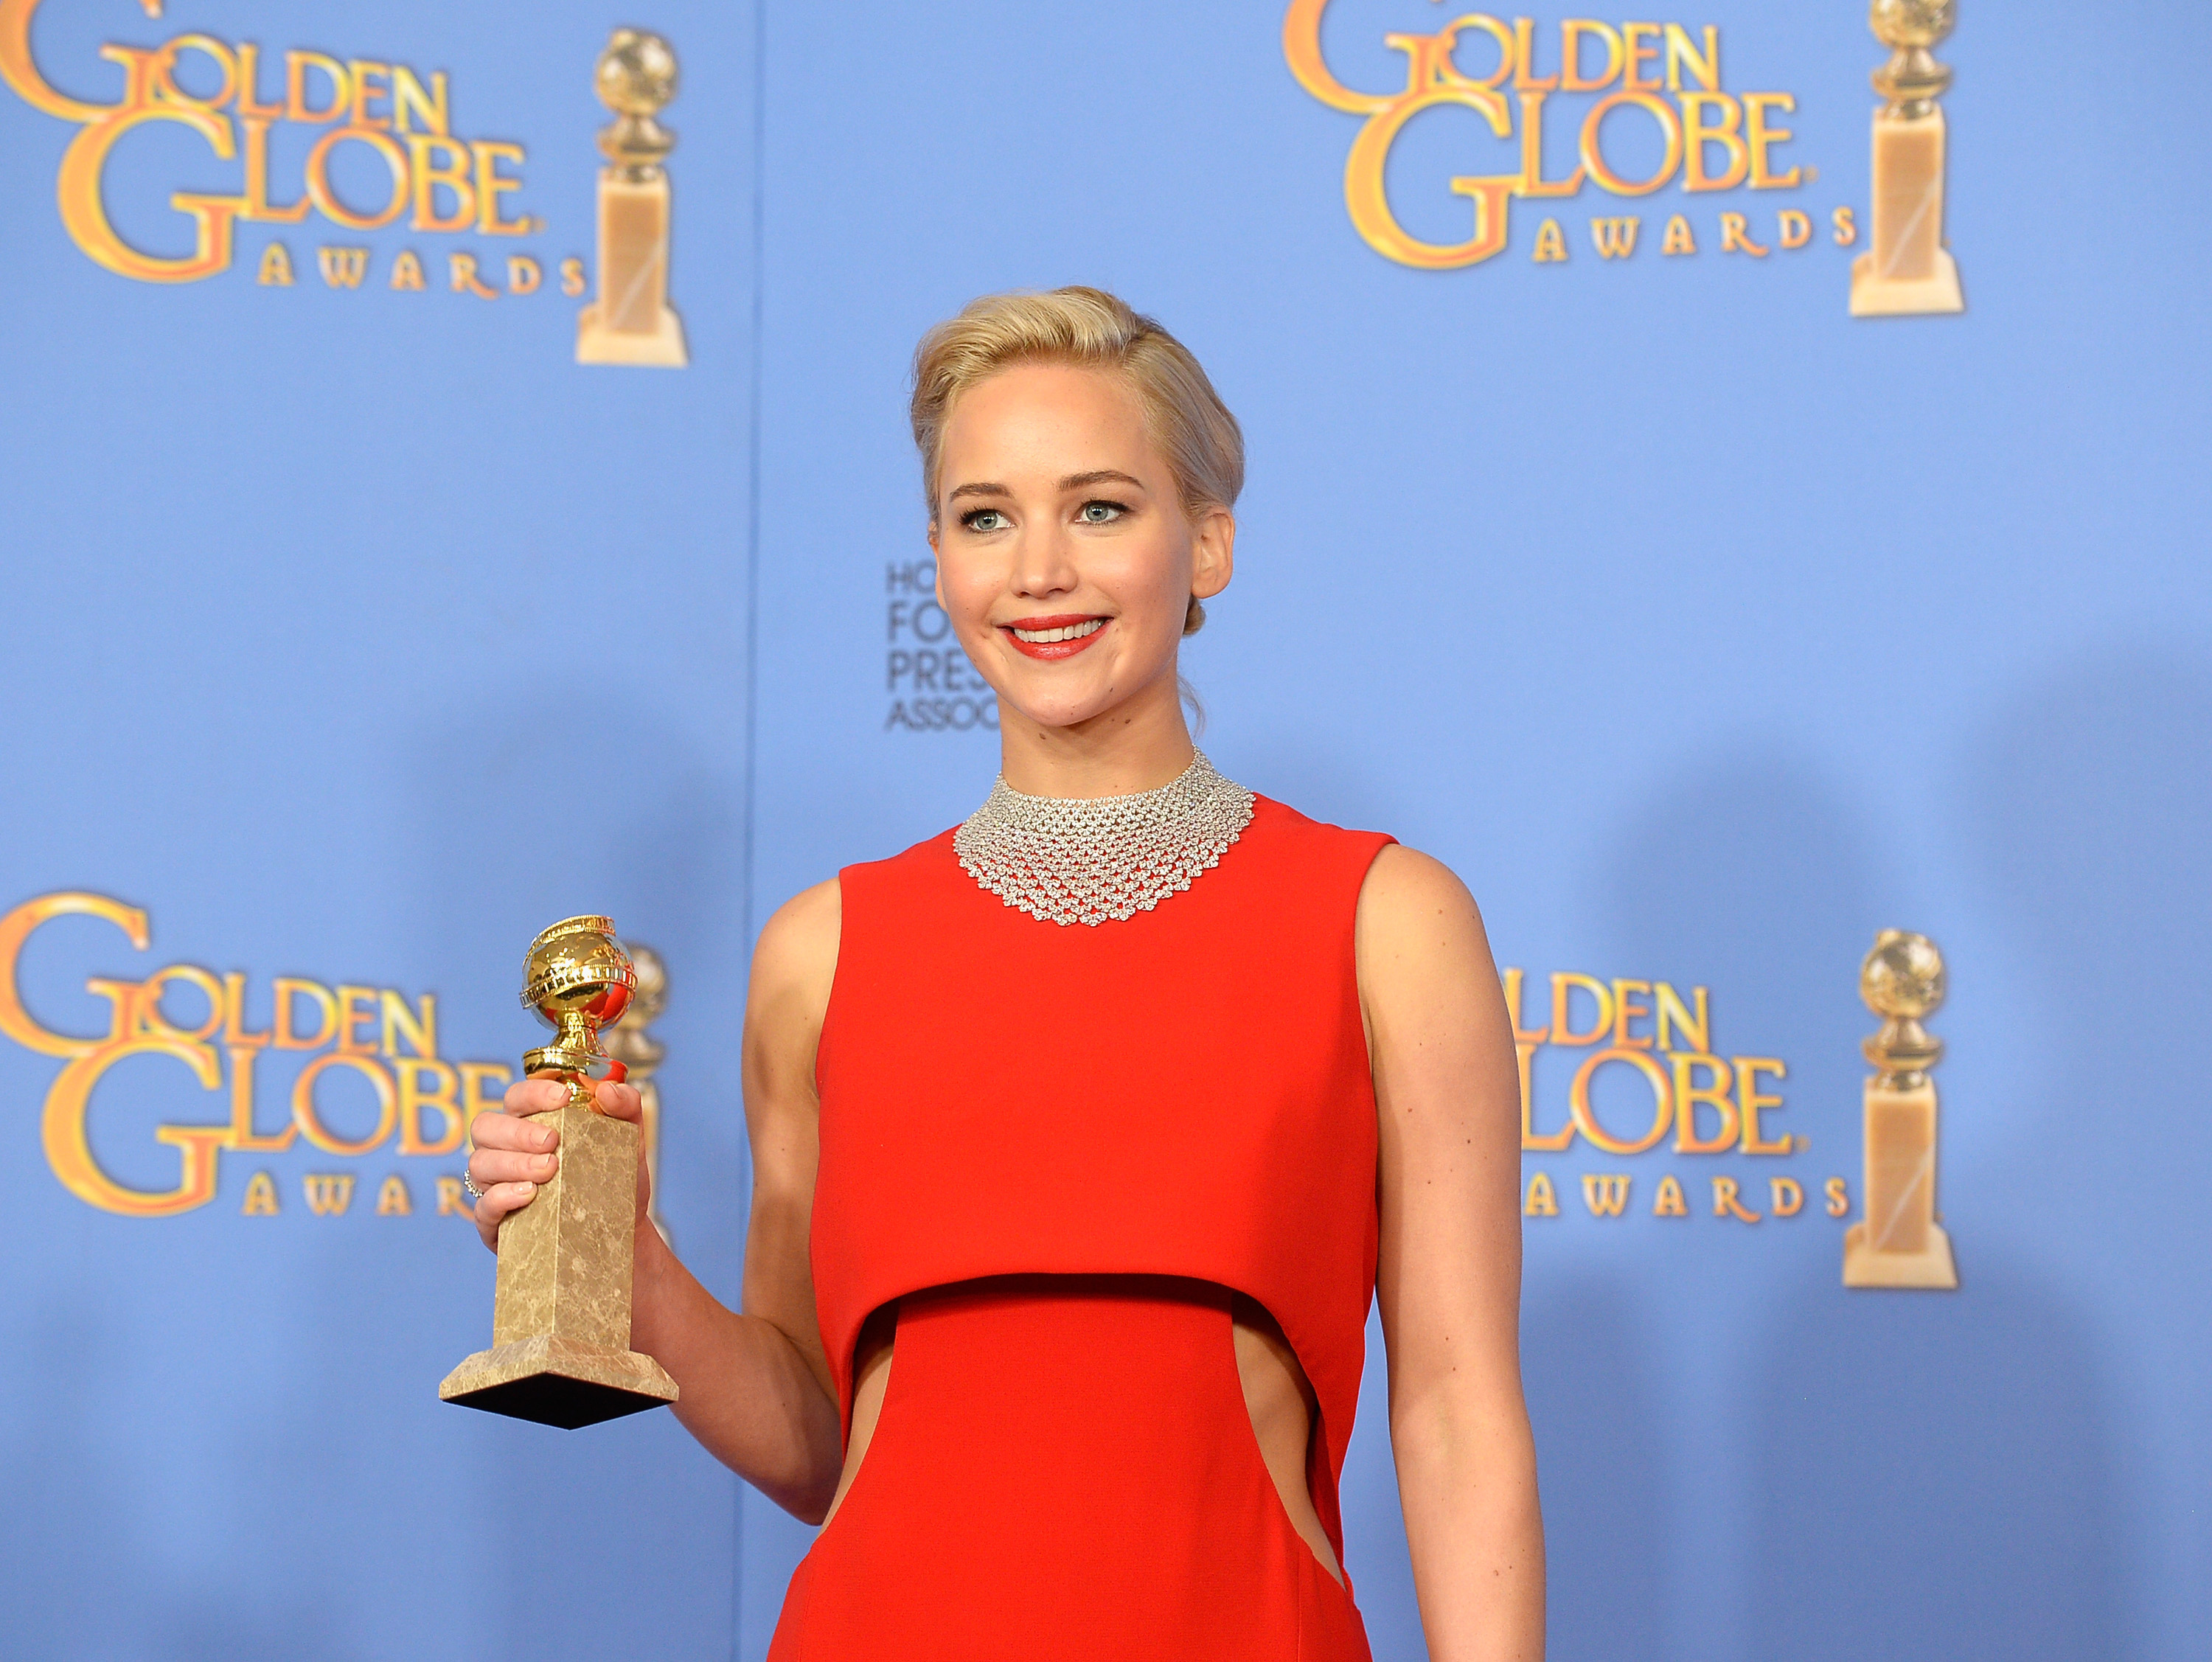 Jennifer Lawrence at the 73rd Annual Golden Globe Awards on January 10, 2016.